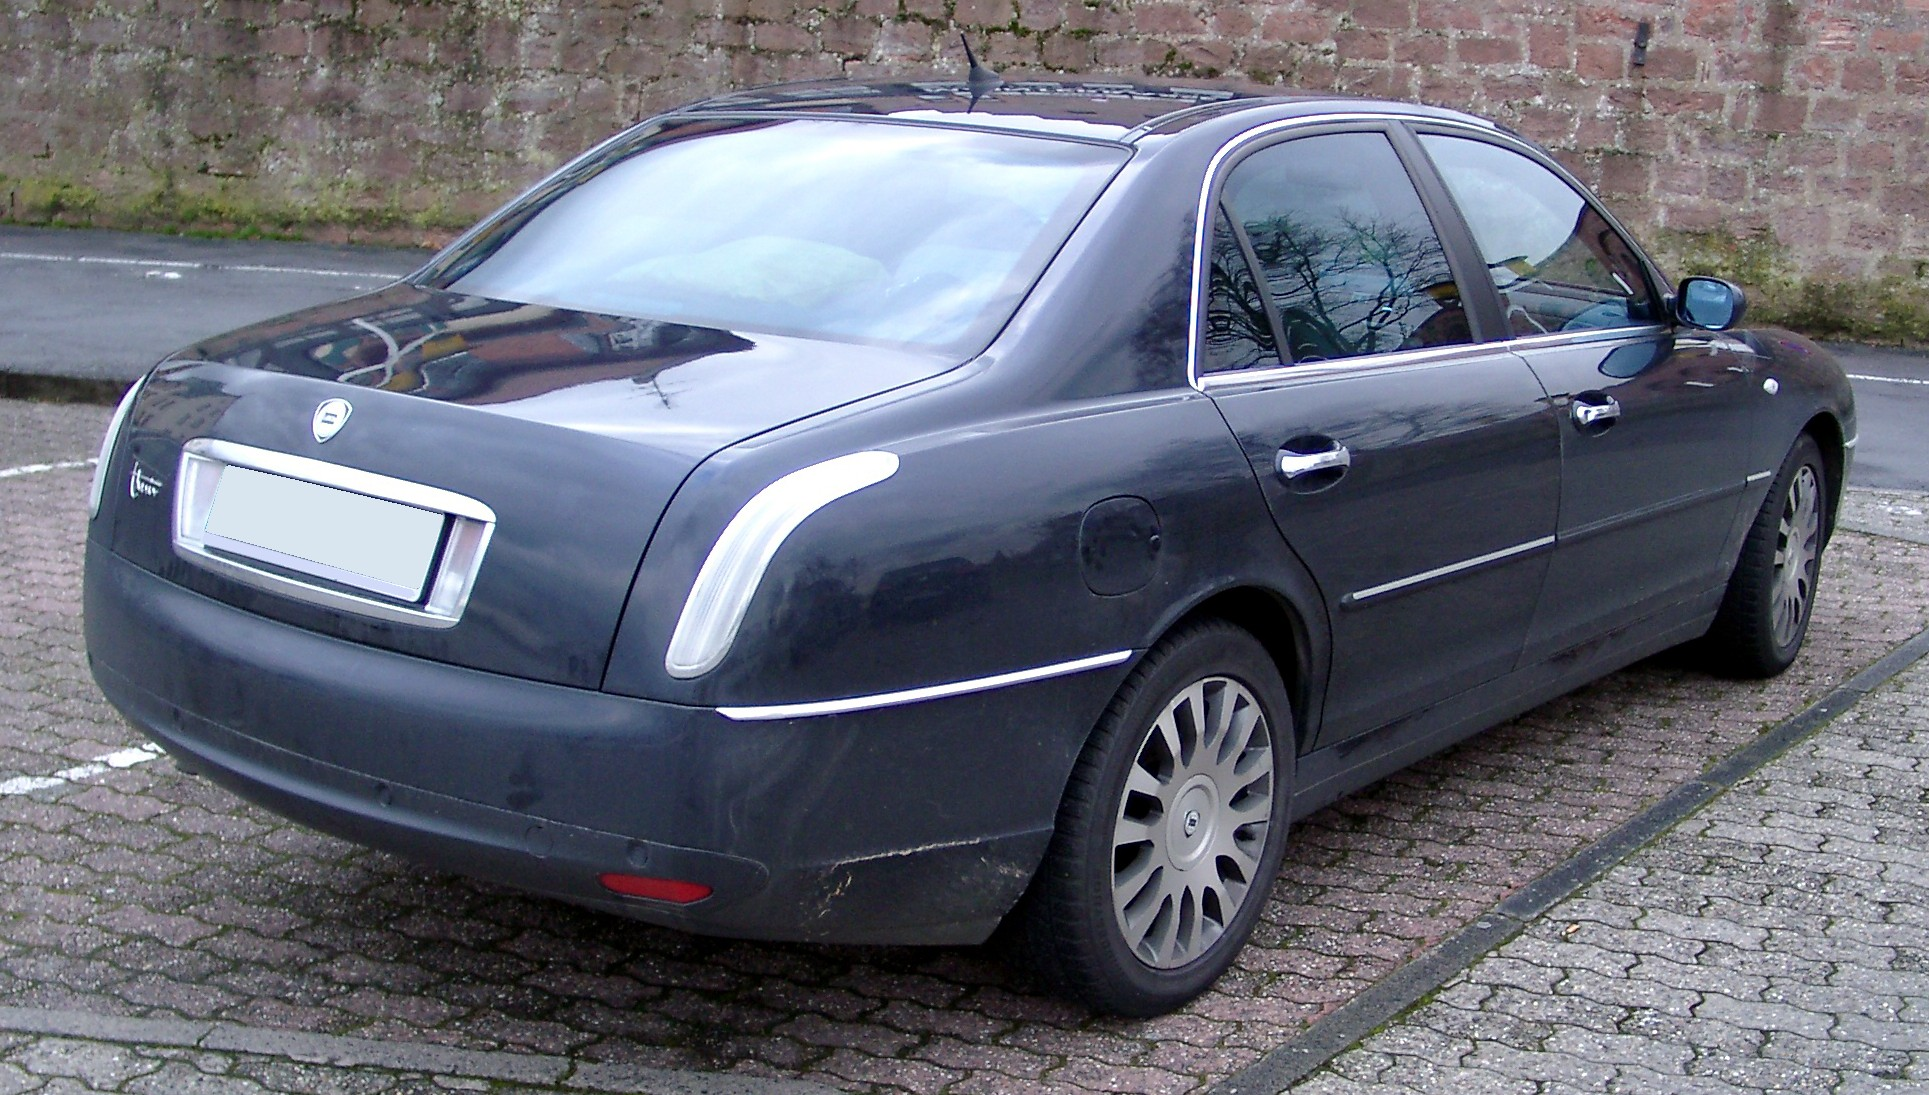 lancia thesis 3.2 review Lancia thesis 32l v6 engine acceleration on lpg (5th generation - liquid injection) from 0 to 180 km/h in automatic mode 0-100 in 7,8sec 0-180 in 24sec.